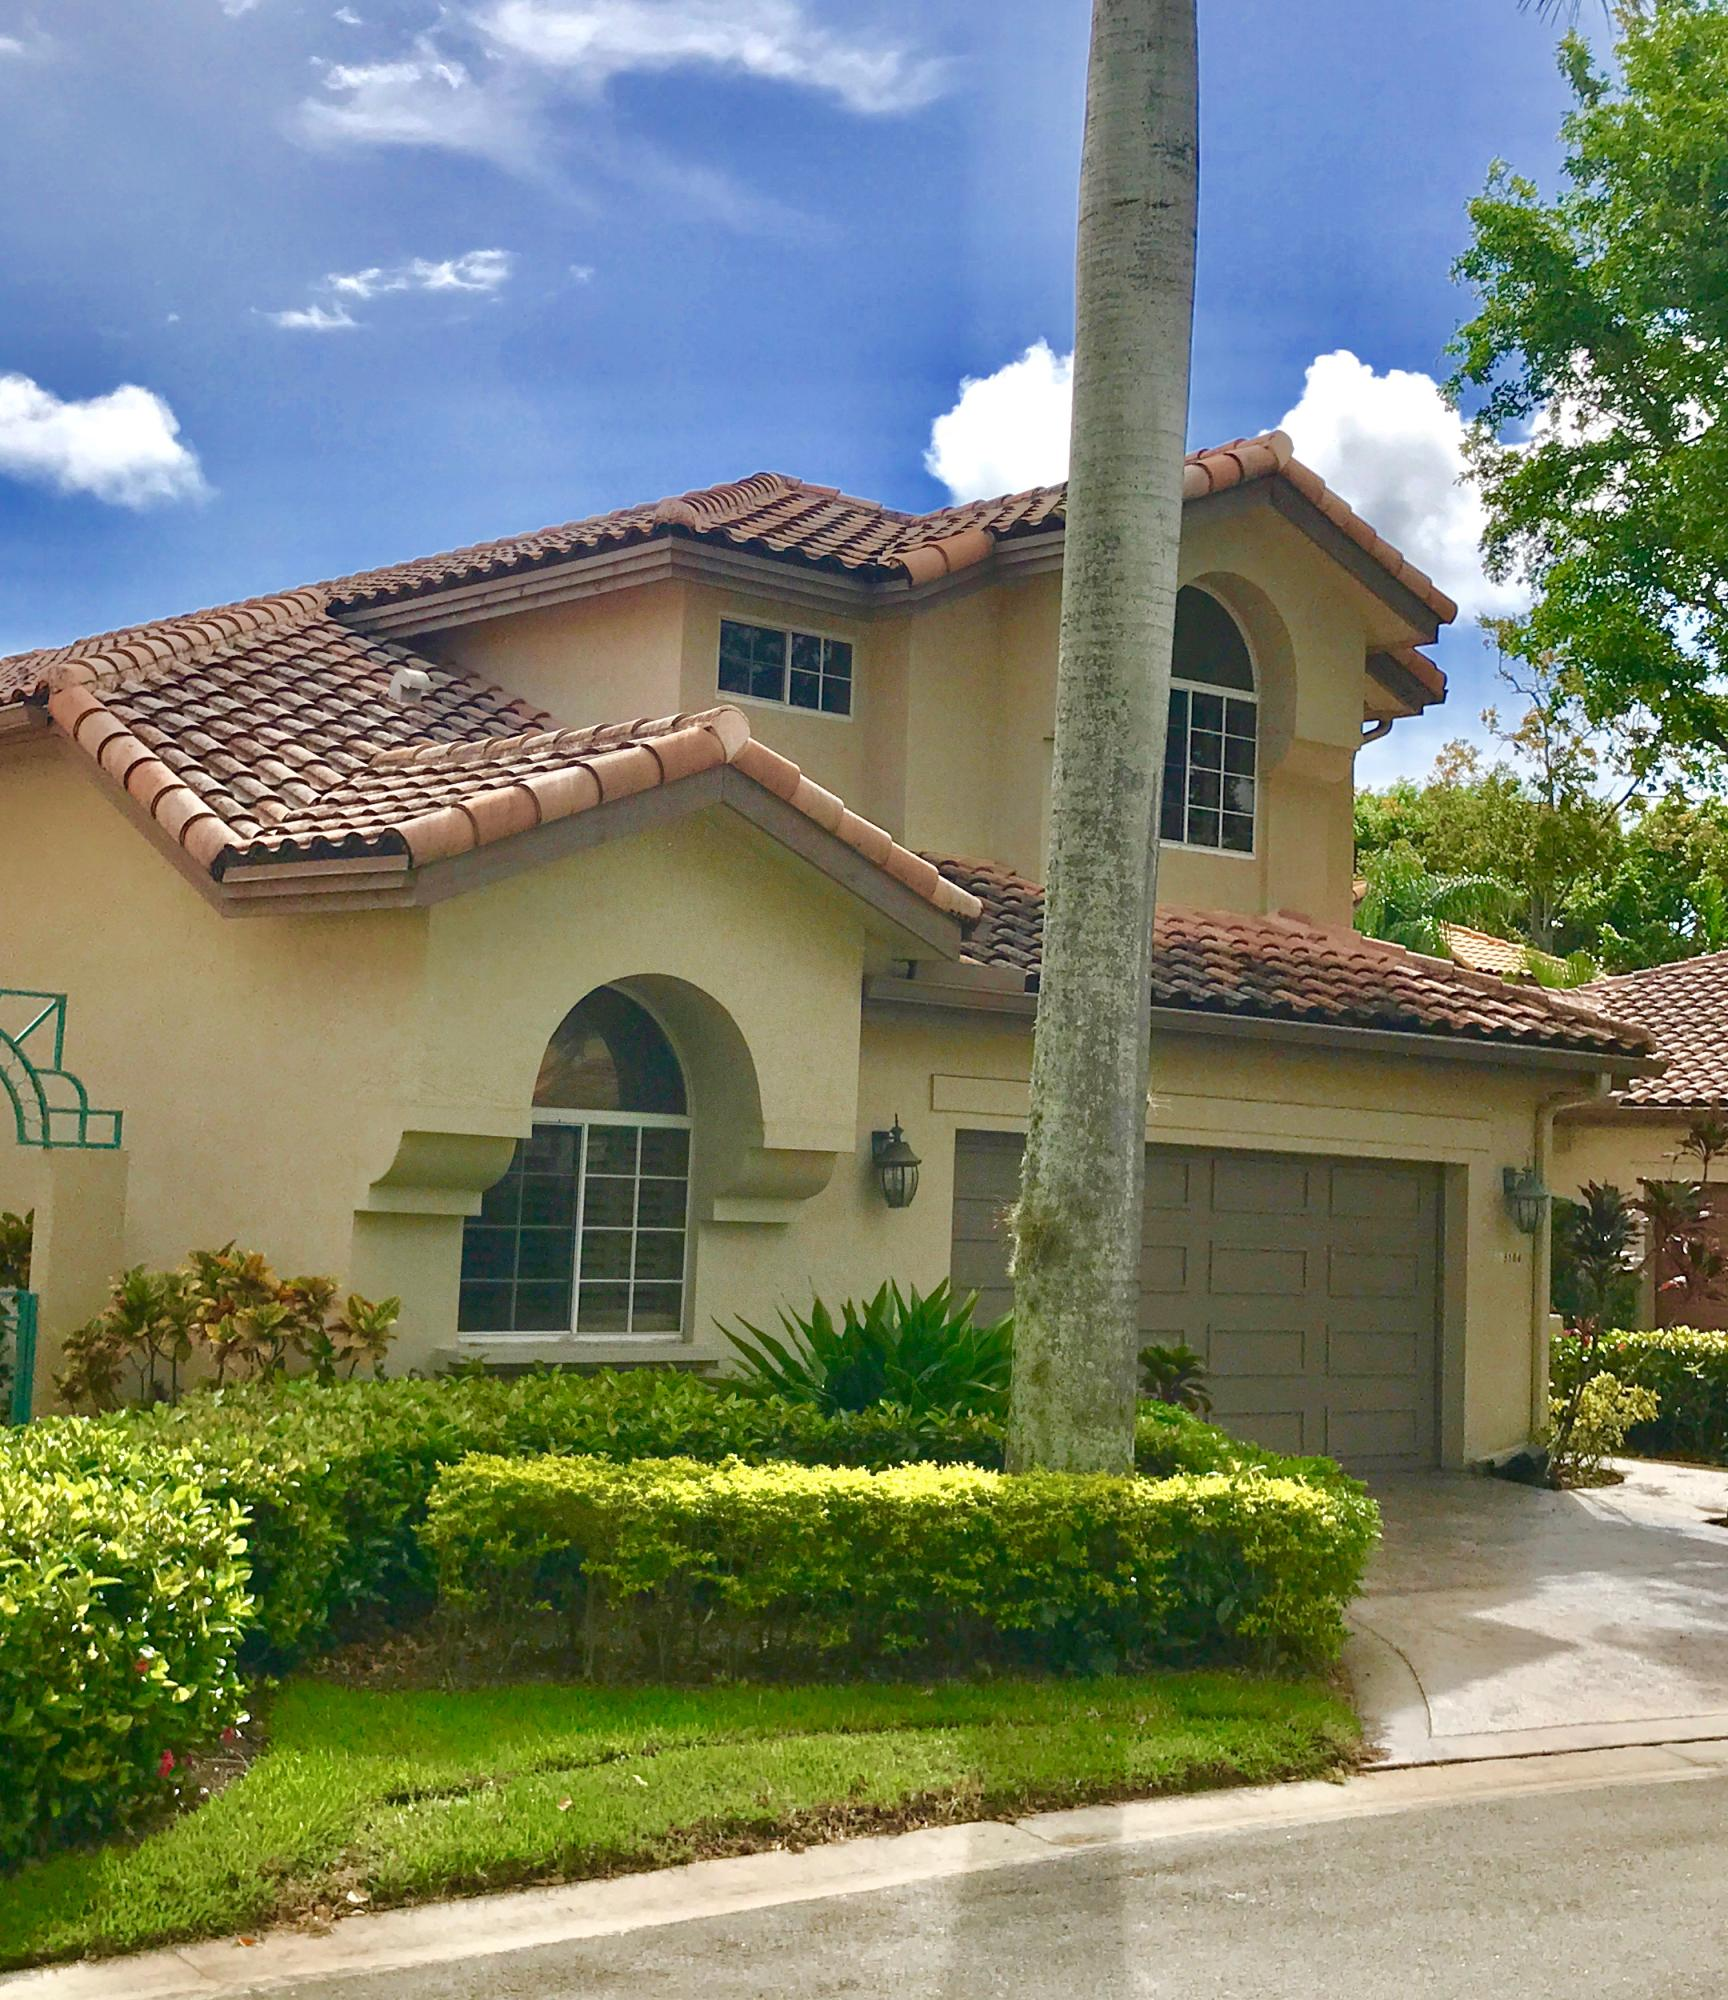 5184 NW 26TH CIRCLE, BOCA RATON, FL 33496